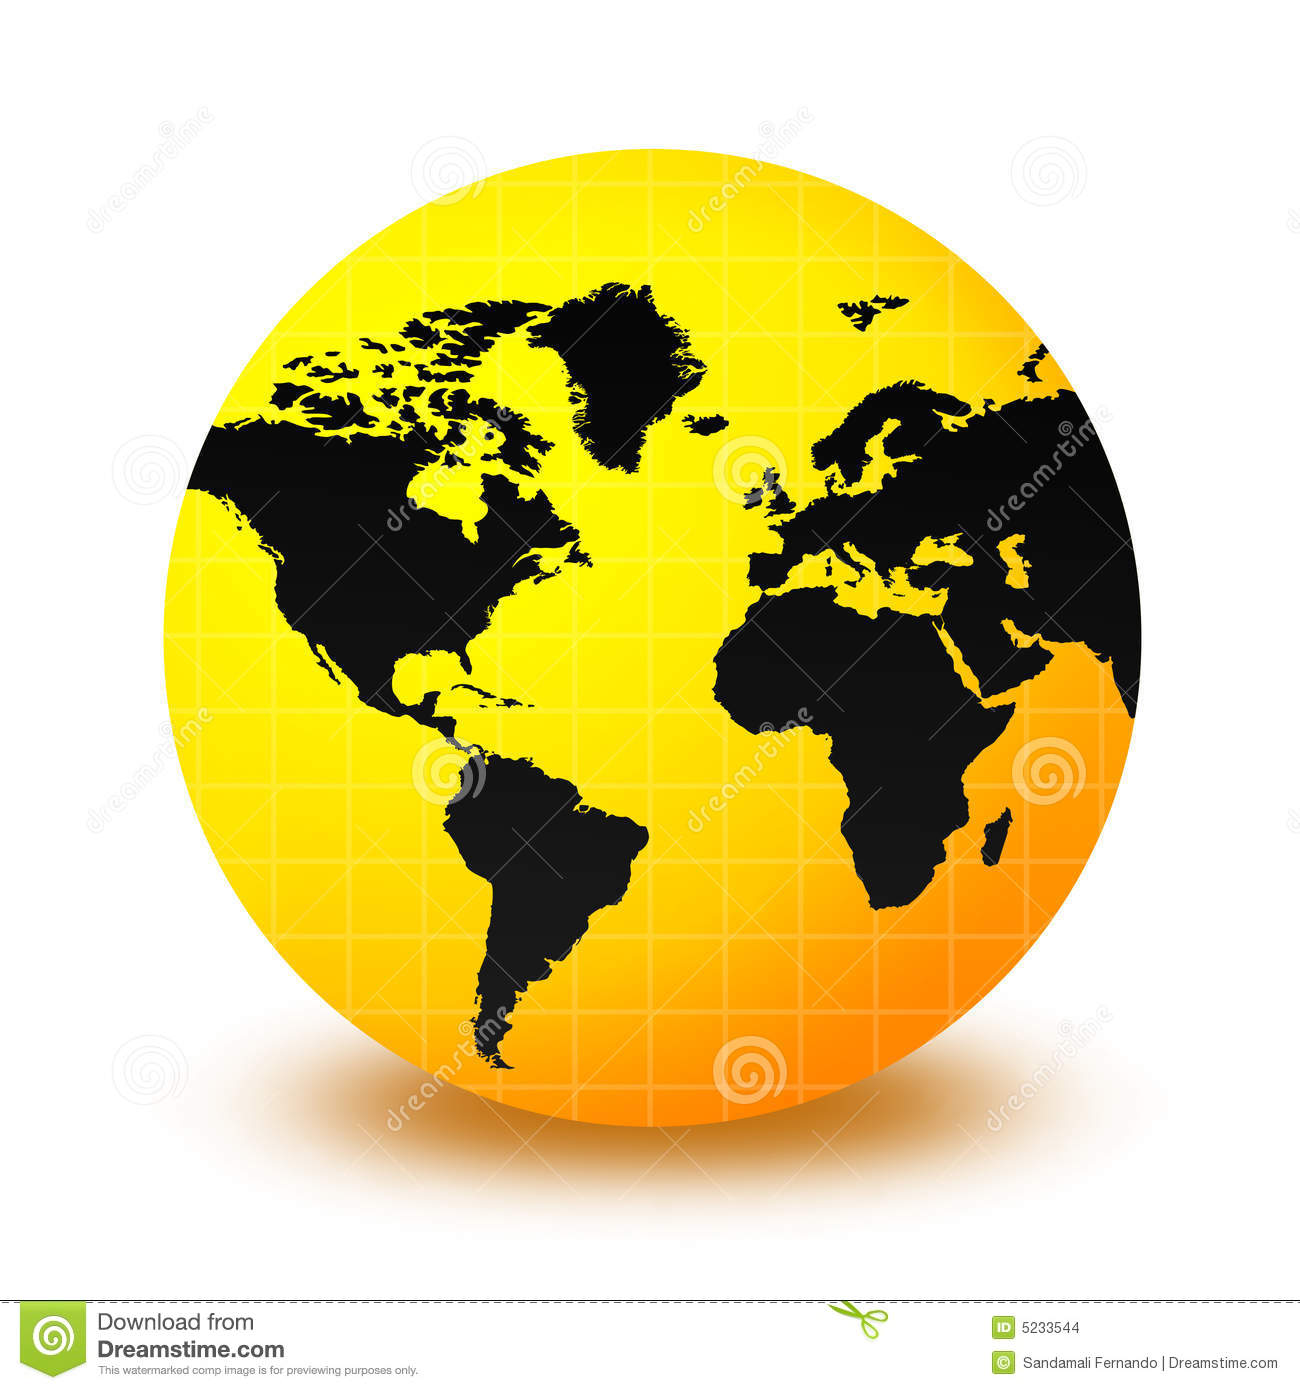 Clean yellow and black world globe isolated on white background ...